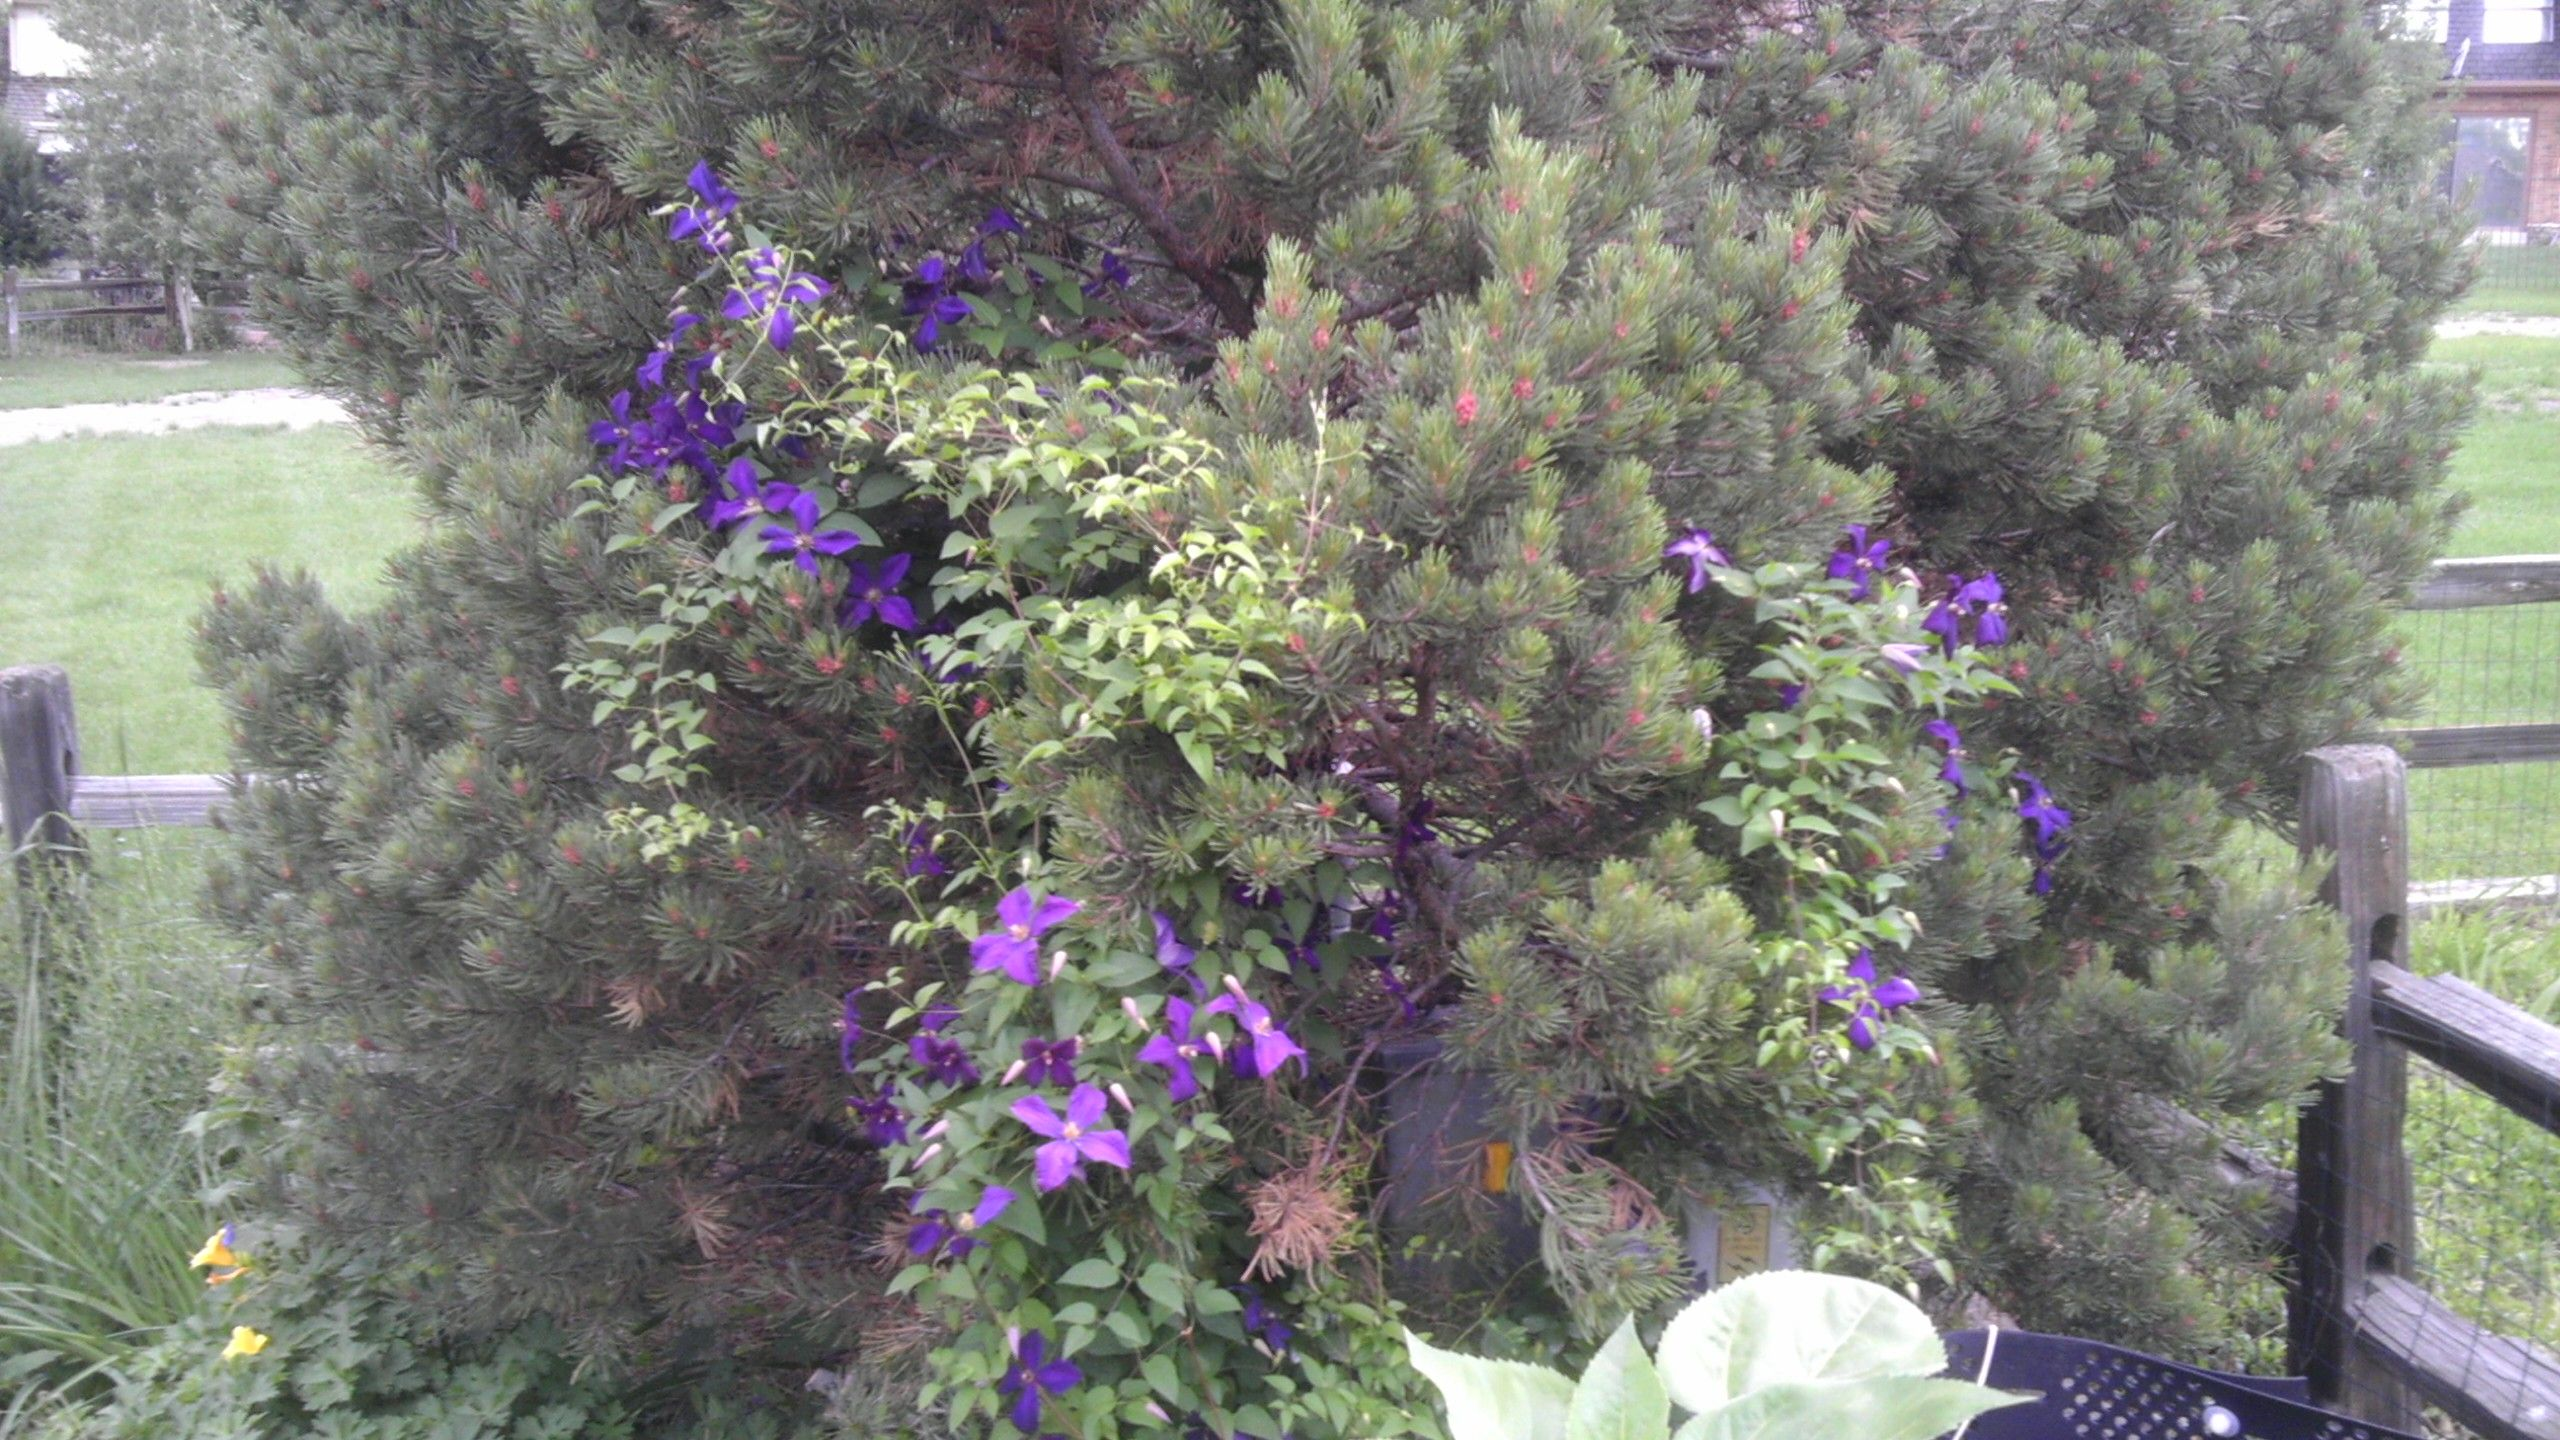 Clematis Growing Up The Pine Tree Clematis Plants Tree